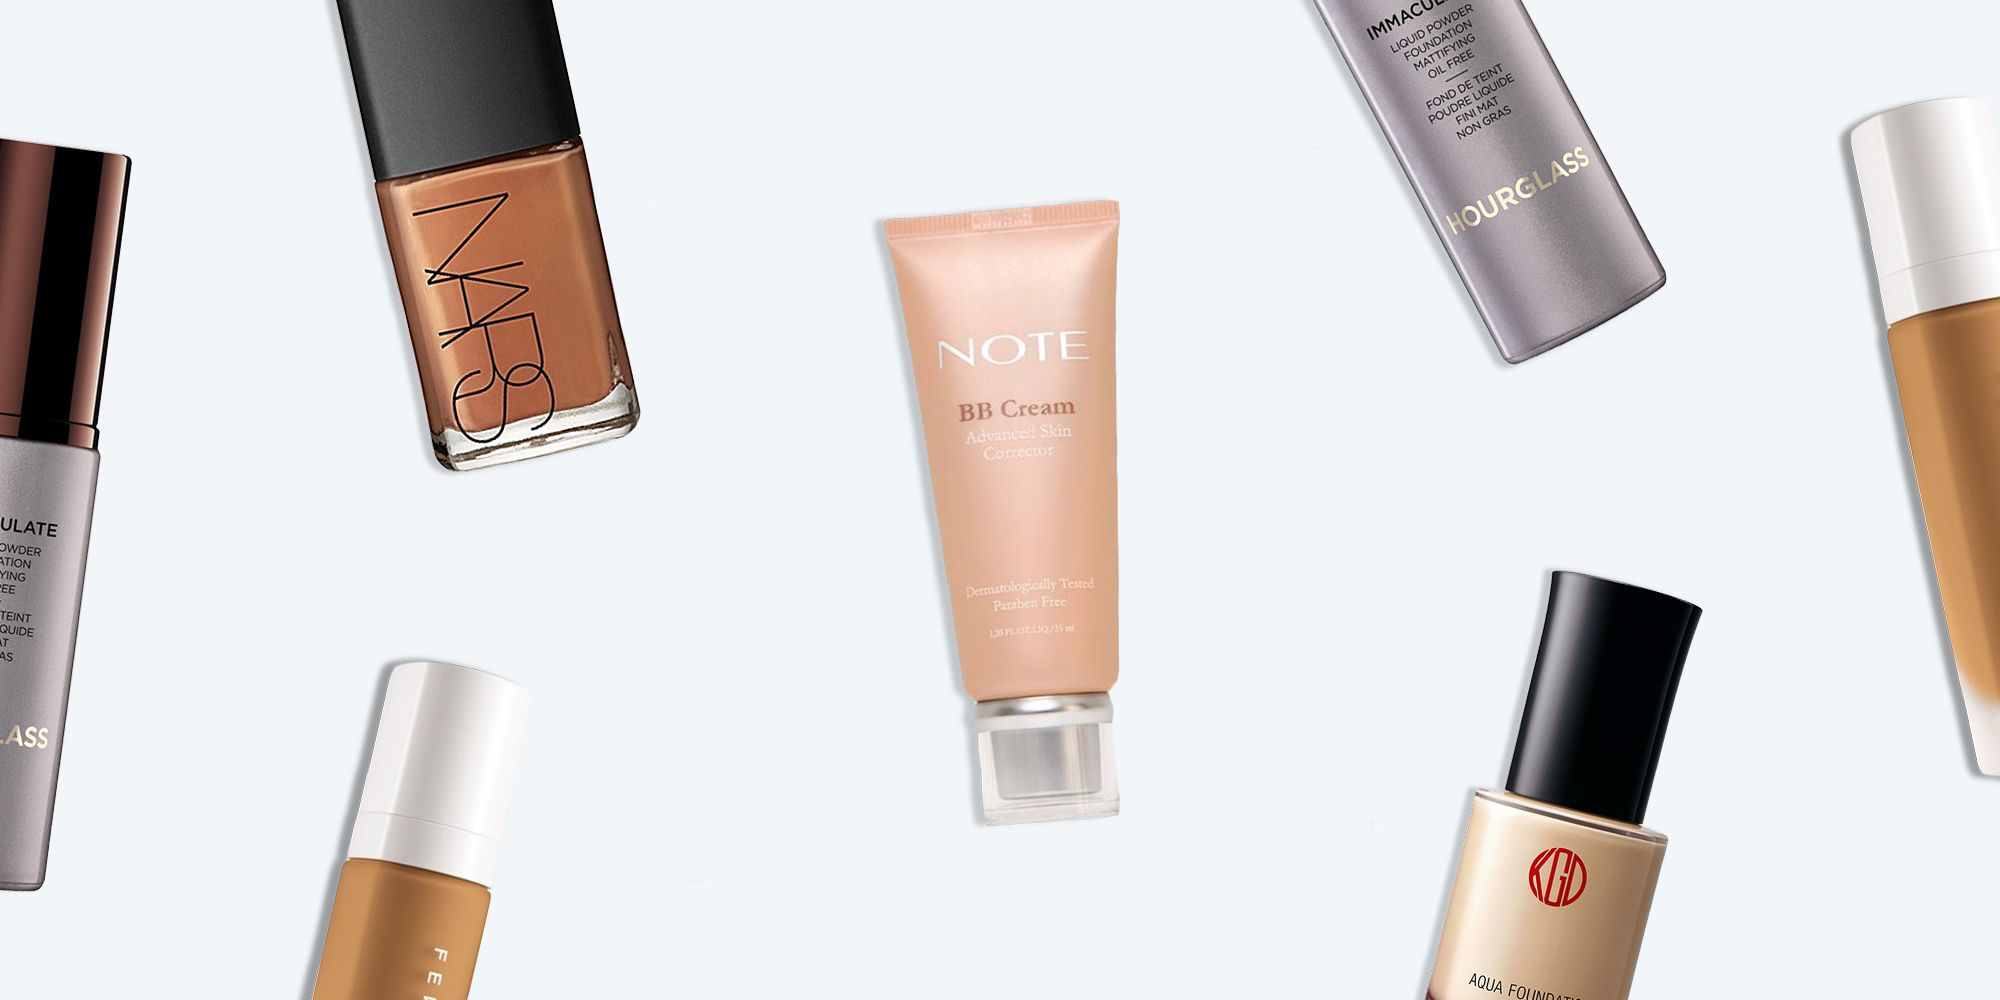 The 10 Best Foundations According to ELLE.com Editors